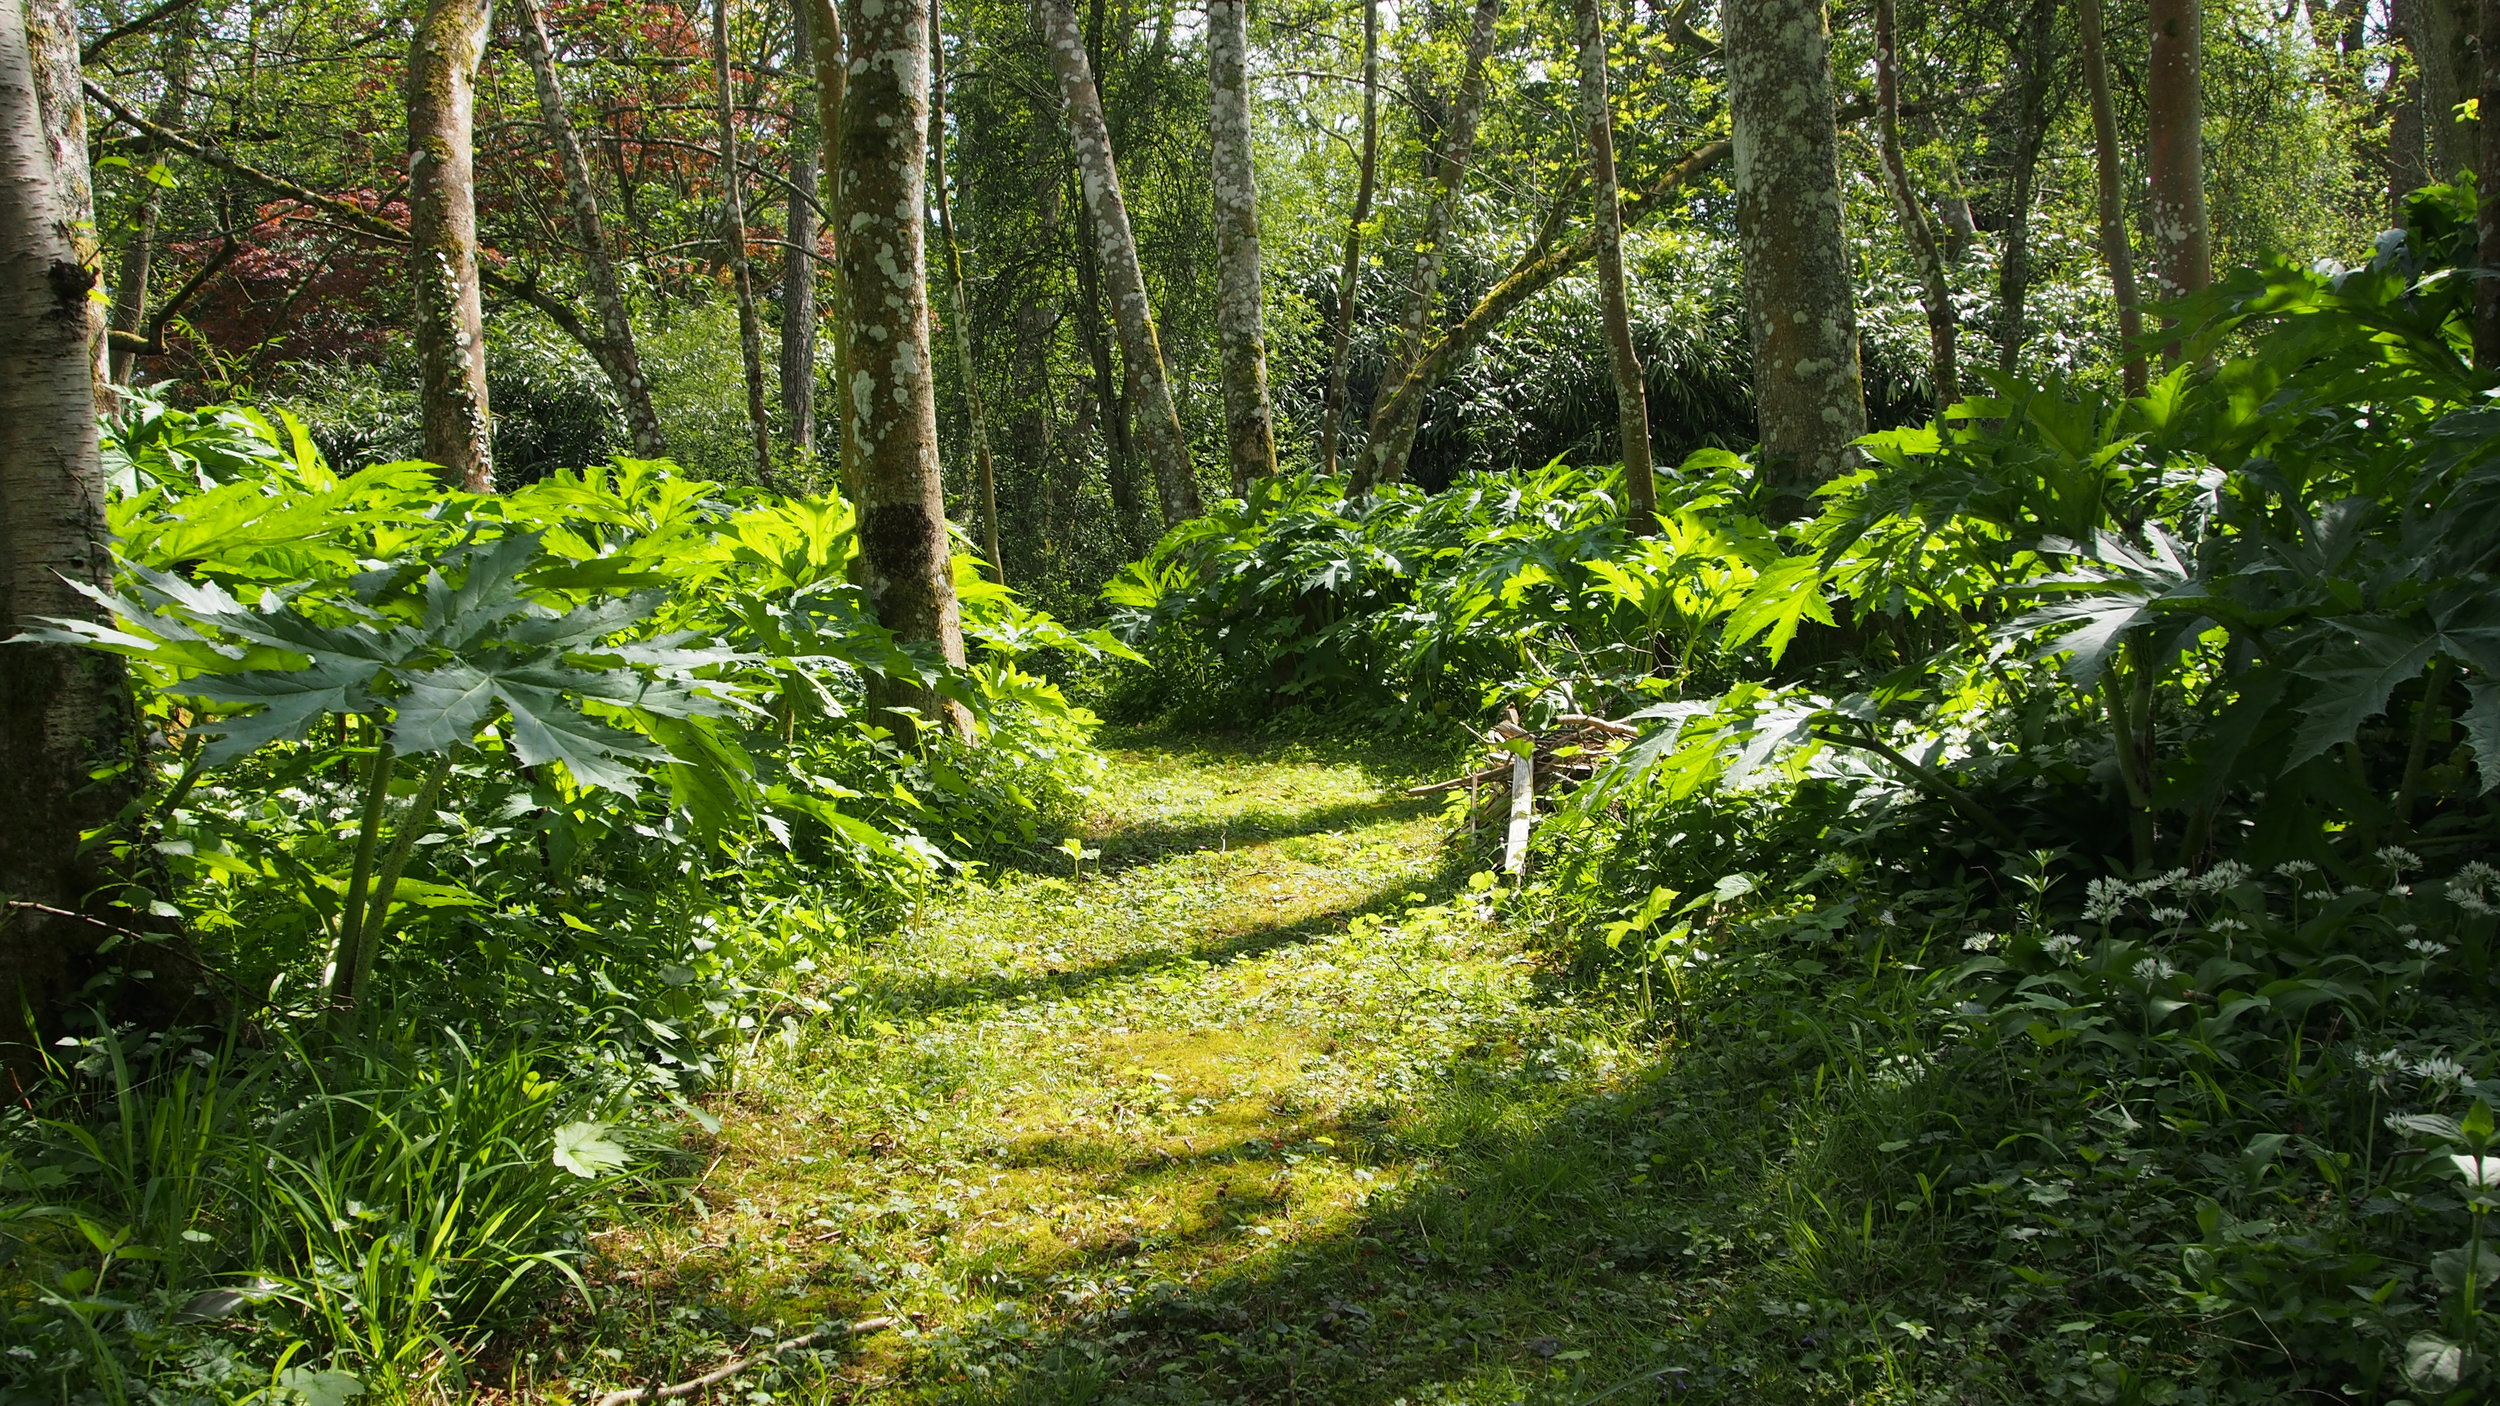 Winding paths allow nature to evolve in the garden